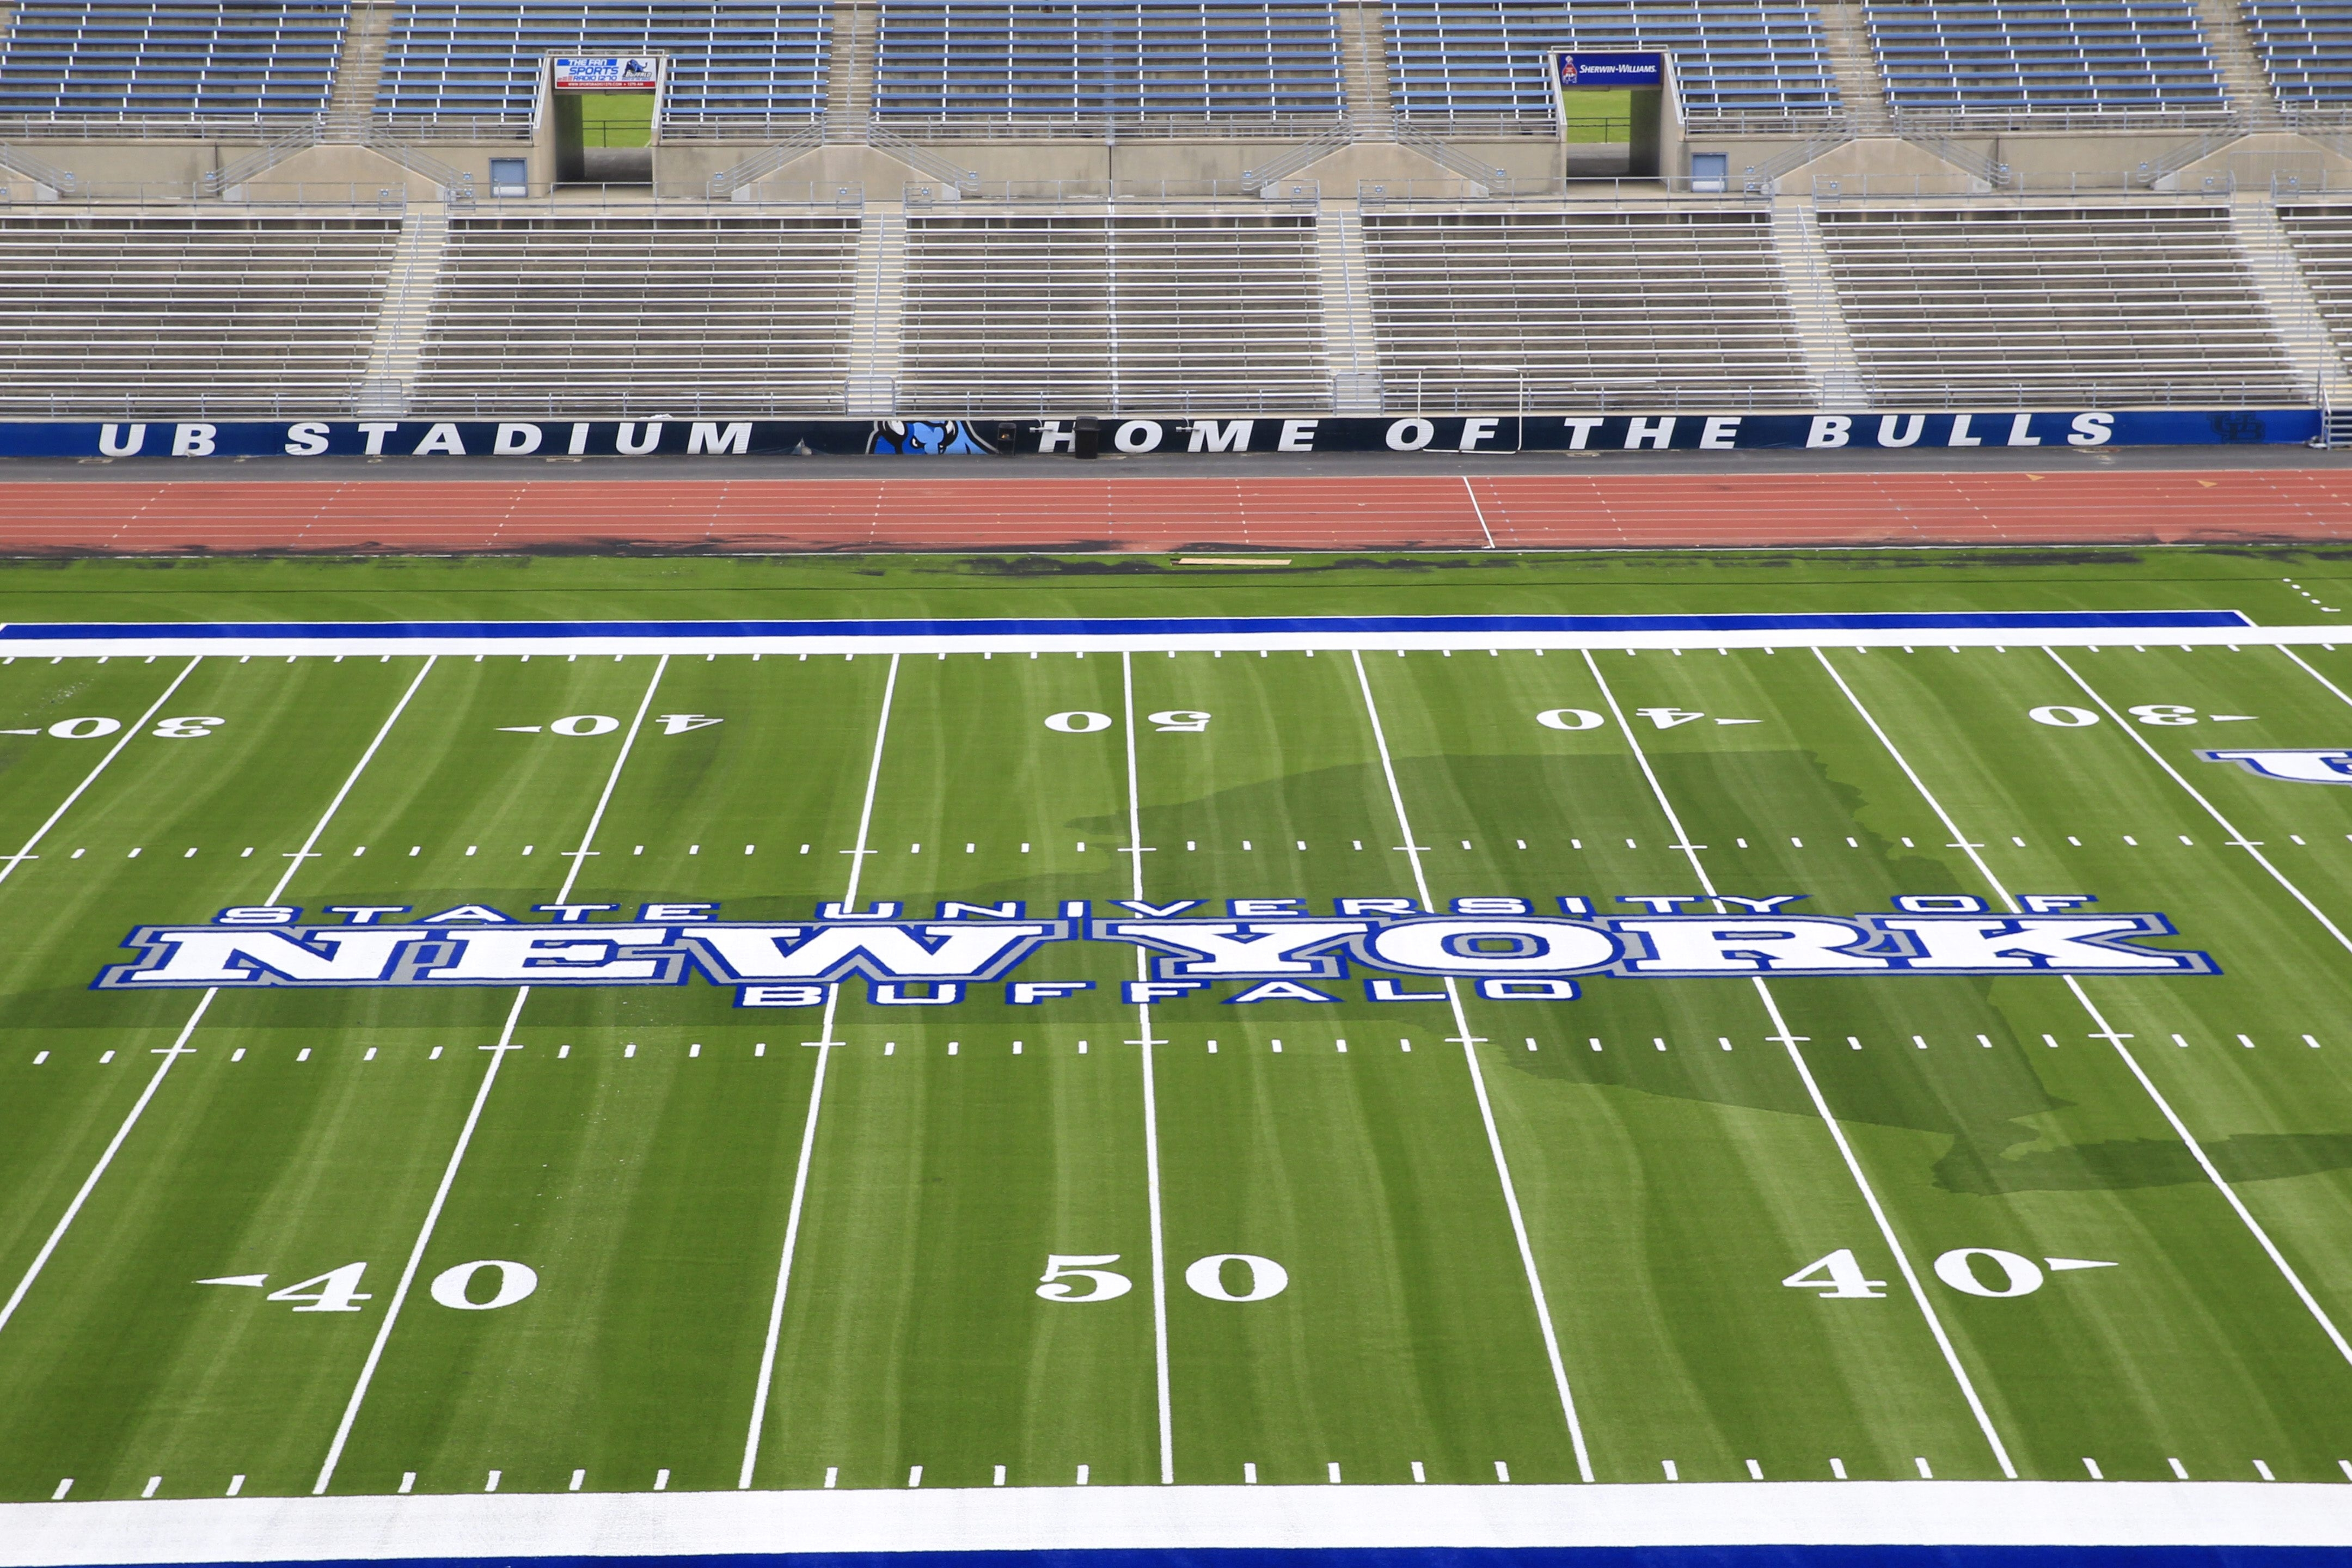 """The field at UB Stadium reflects the new branding effort """"New York Bulls Initiative"""" where the state's name is more prominent than Buffalo."""